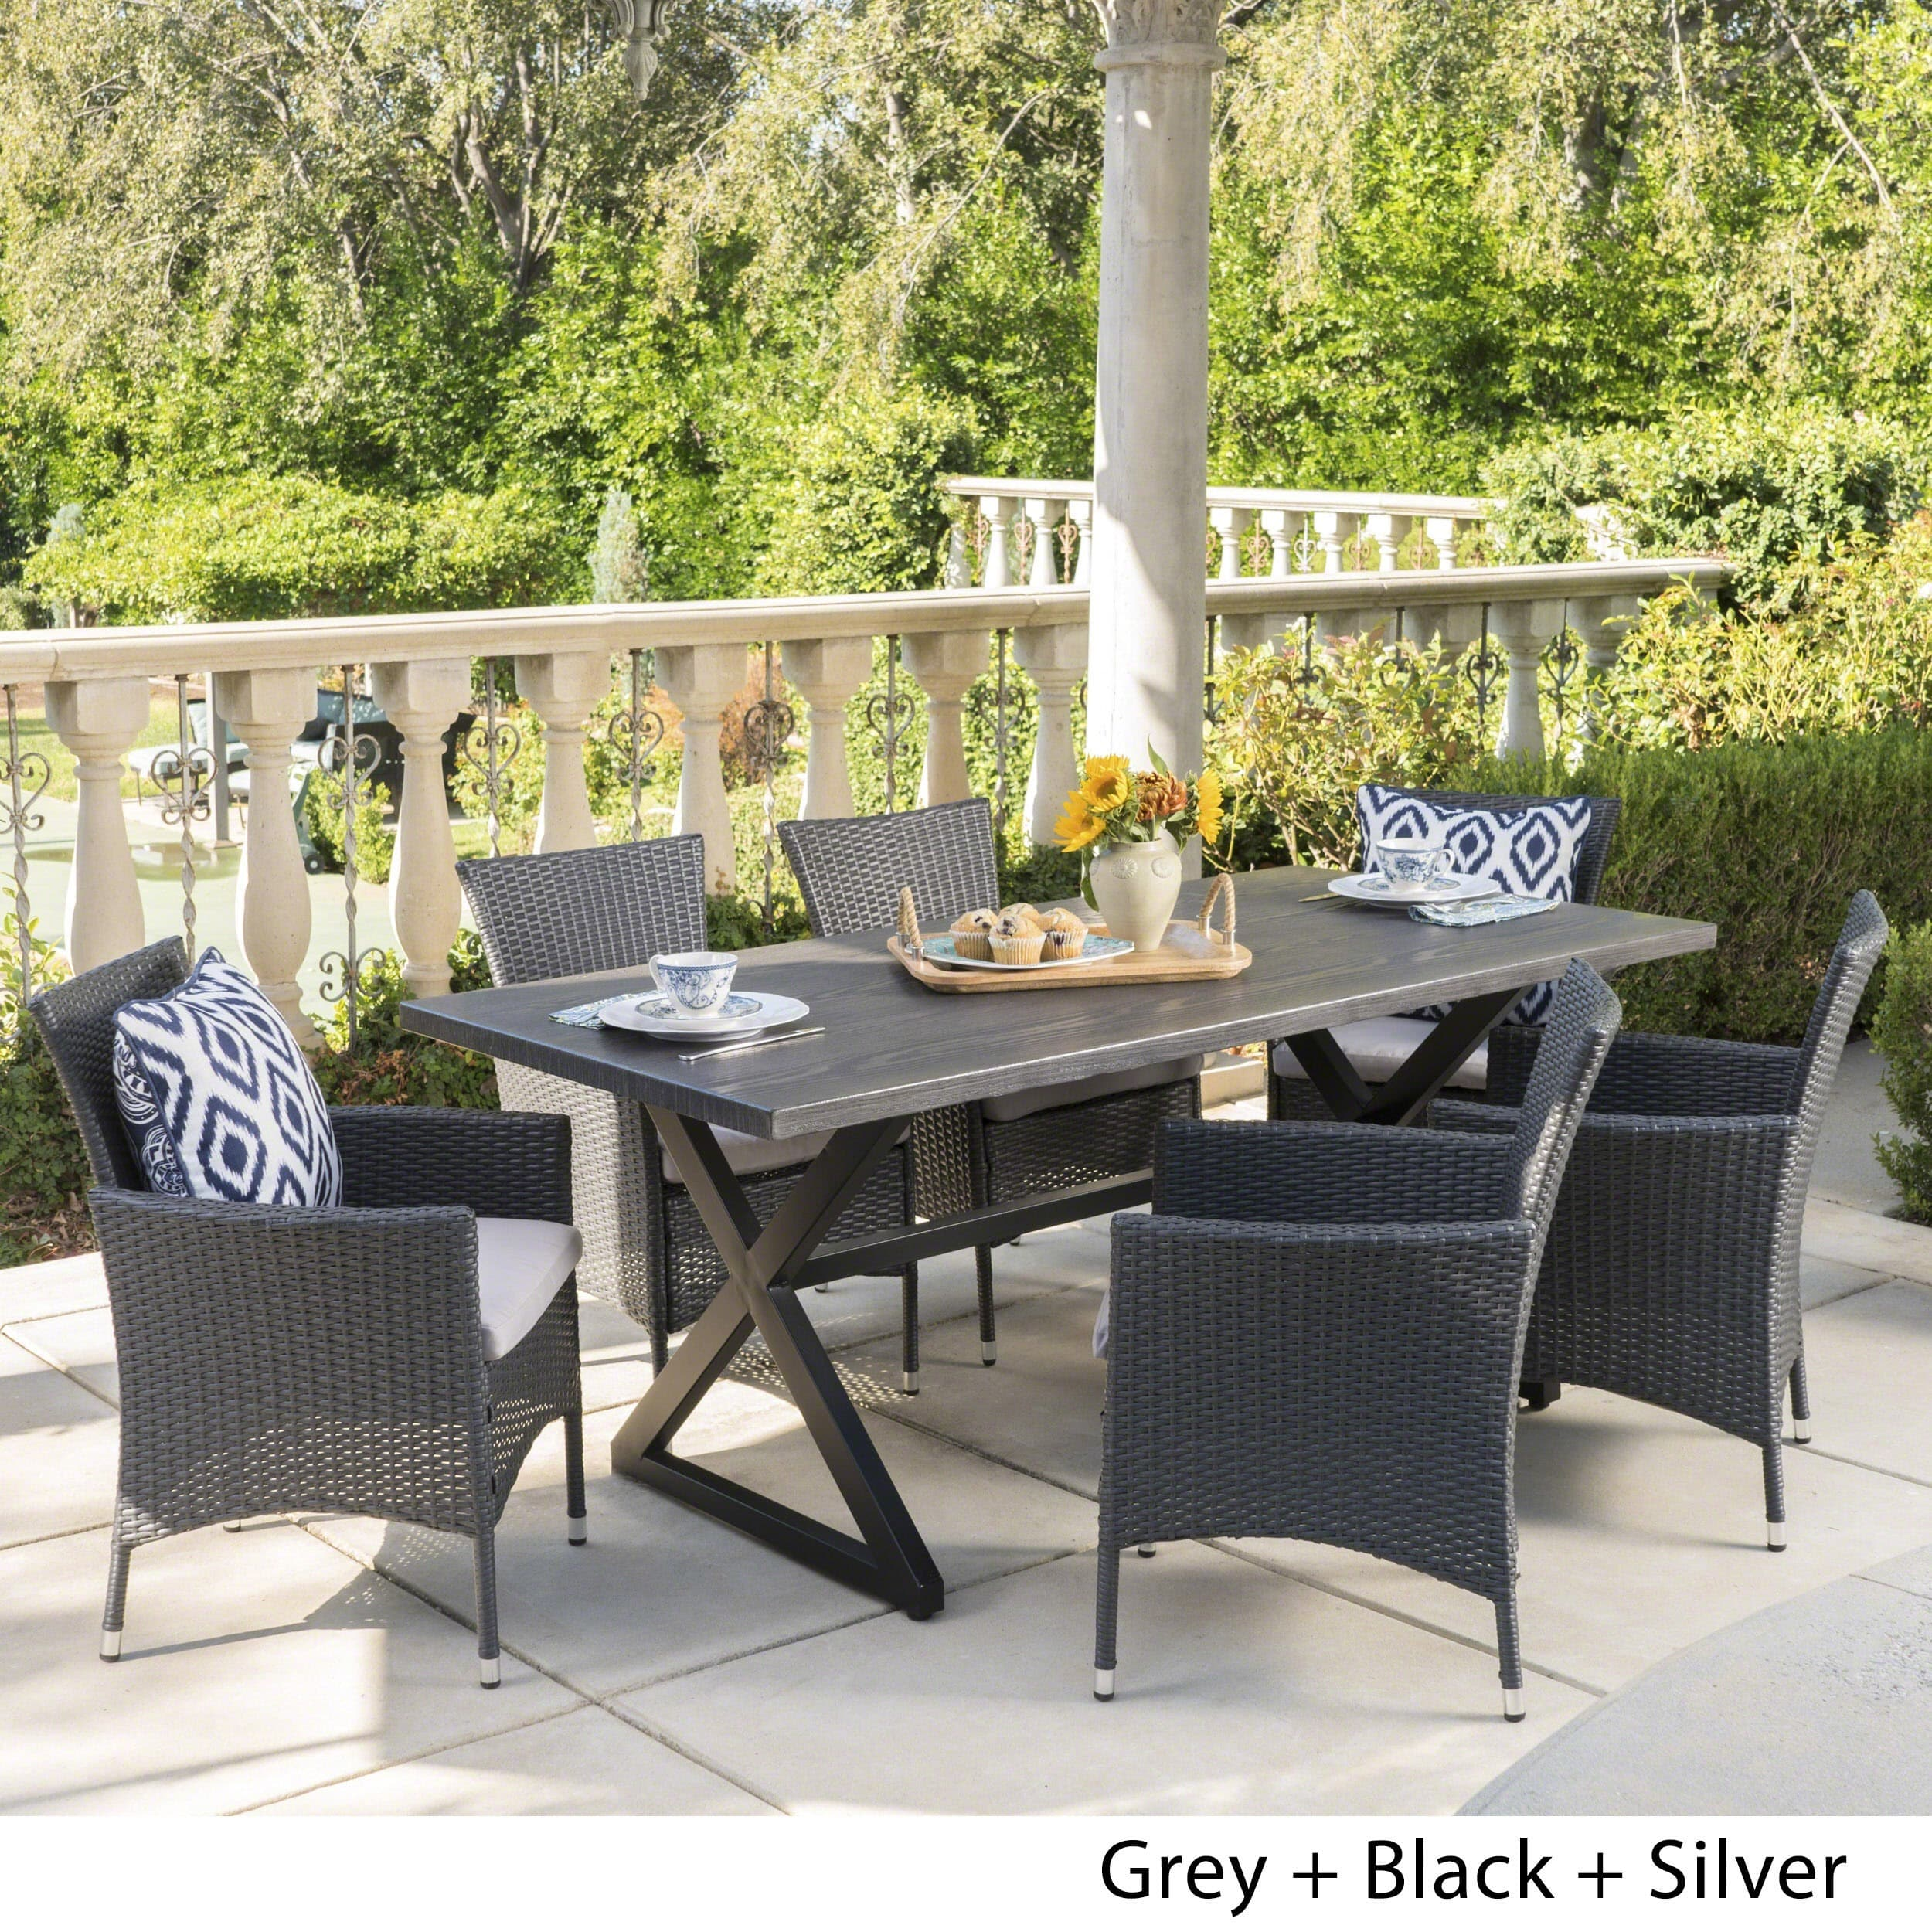 Christopher Knight Home Dion Outdoor 7-piece Rectangular Wicker Aluminum Dining Set with Cushions by  Grey + Black + Silver